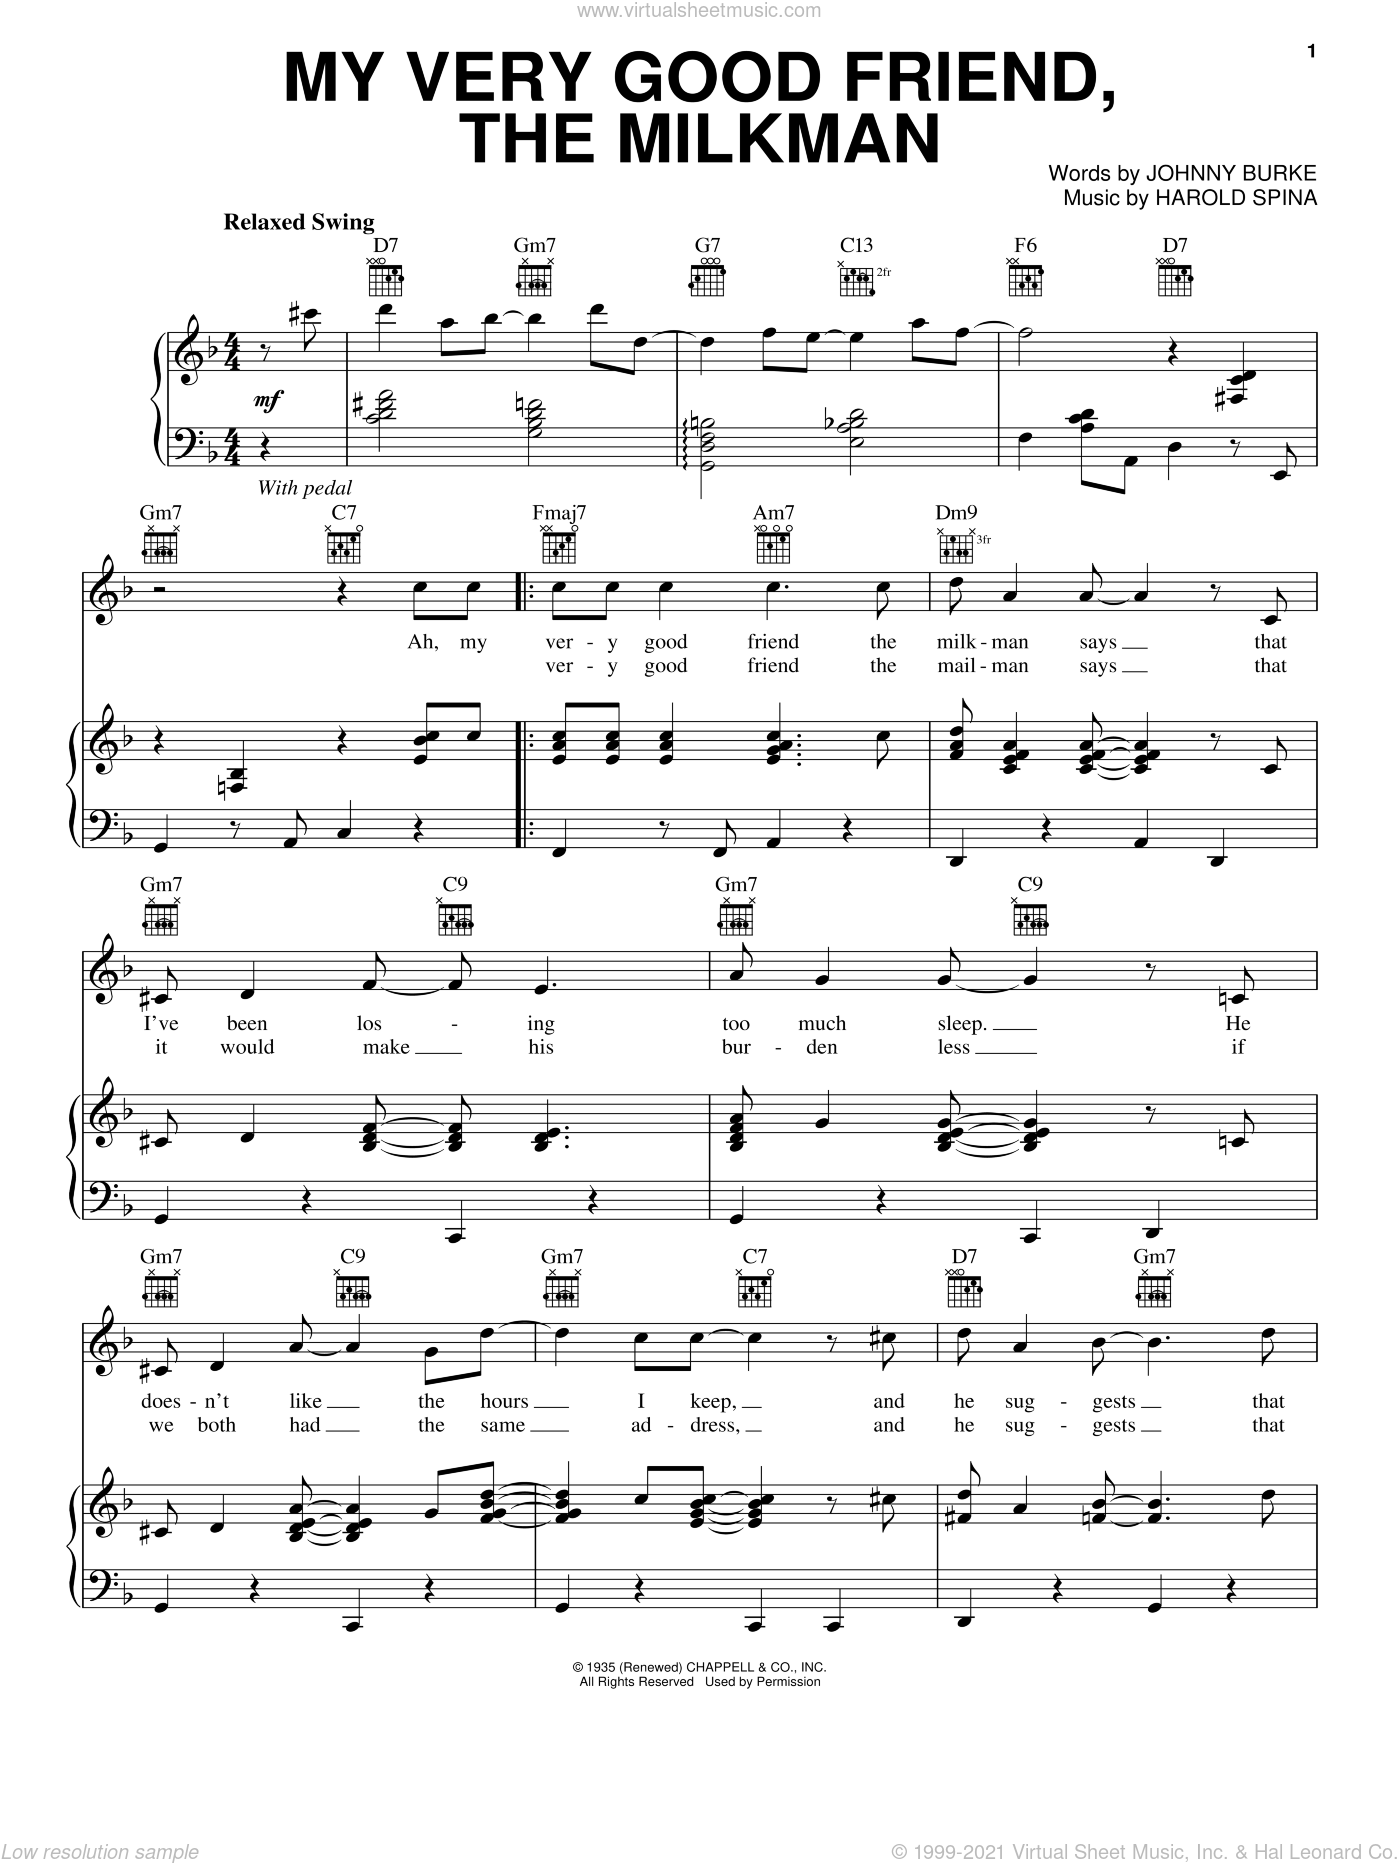 My Very Good Friend, The Milkman sheet music for voice, piano or guitar by Paul McCartney, Harold Spina and John Burke, intermediate skill level